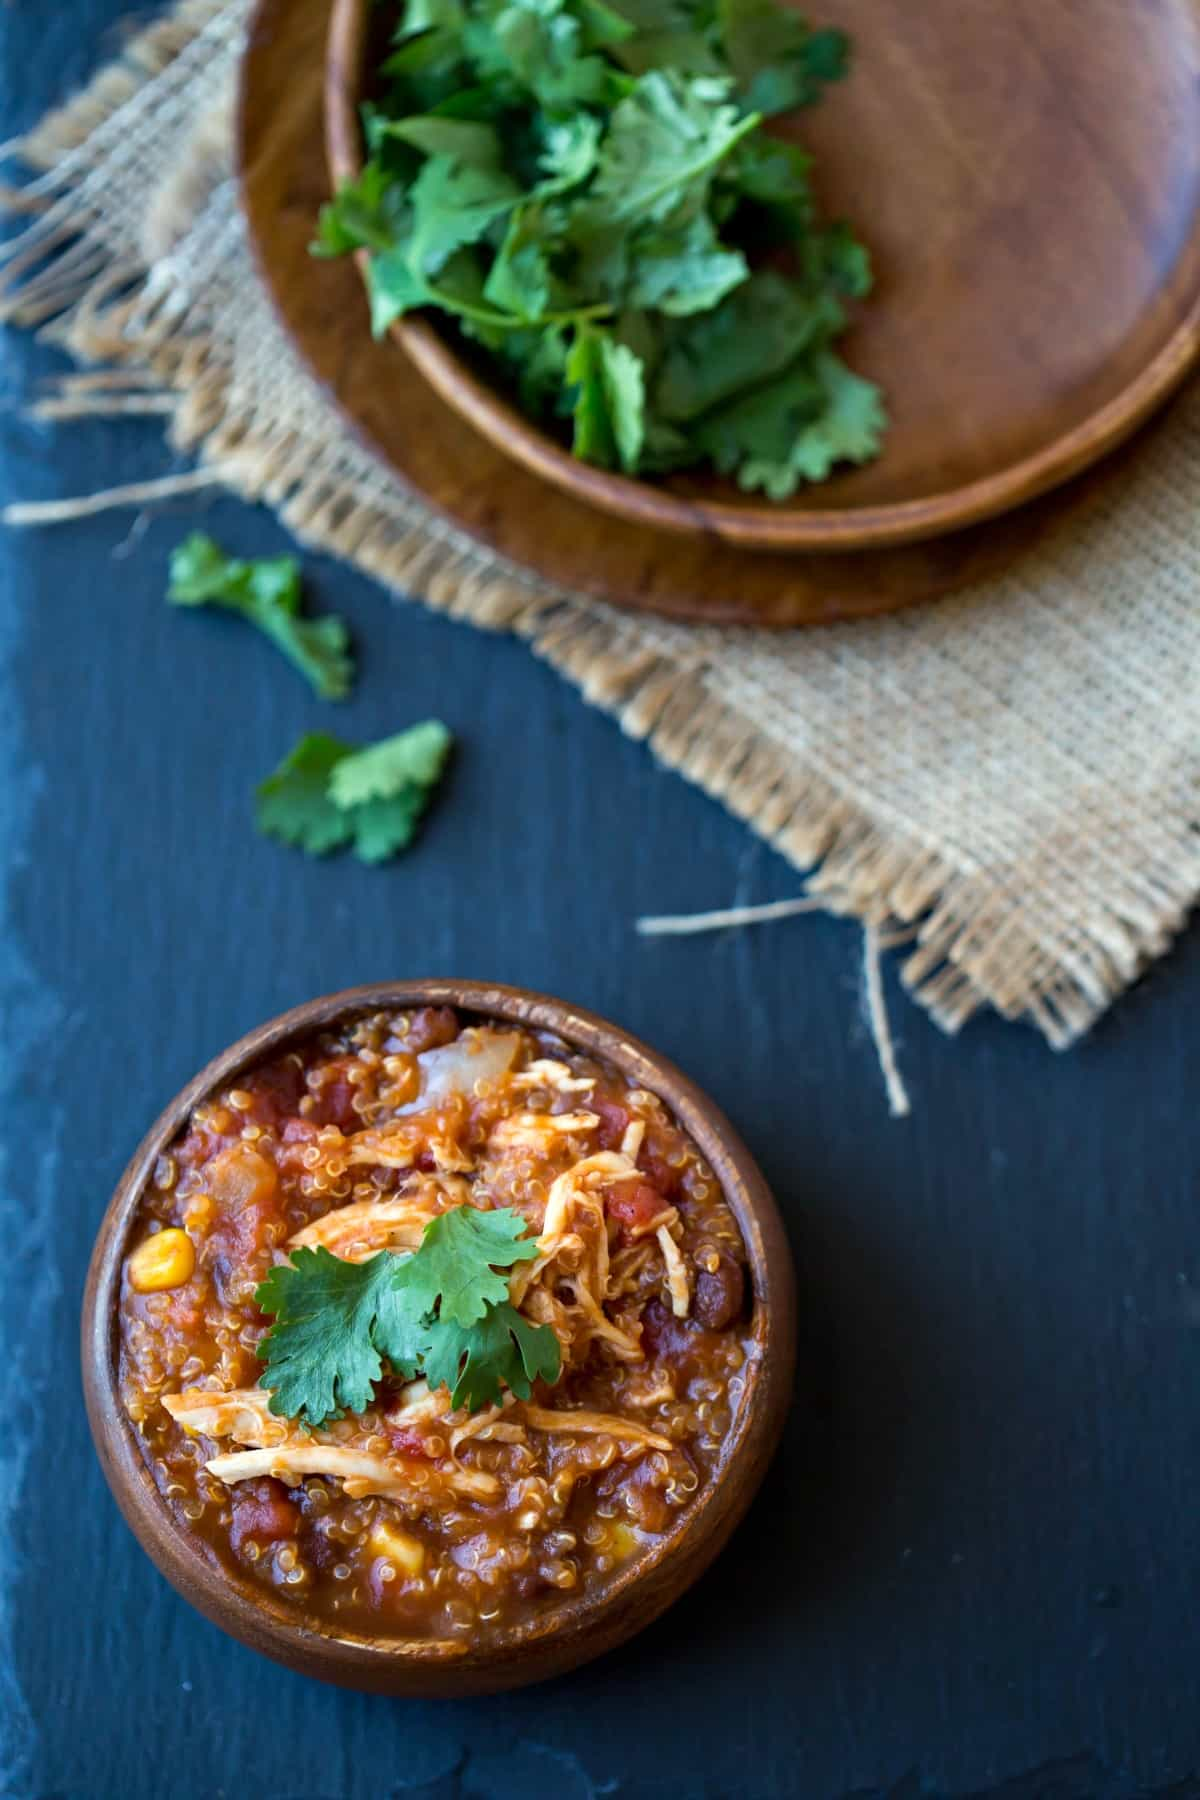 Slow Cooker Barbecue Chicken Quinoa Chili